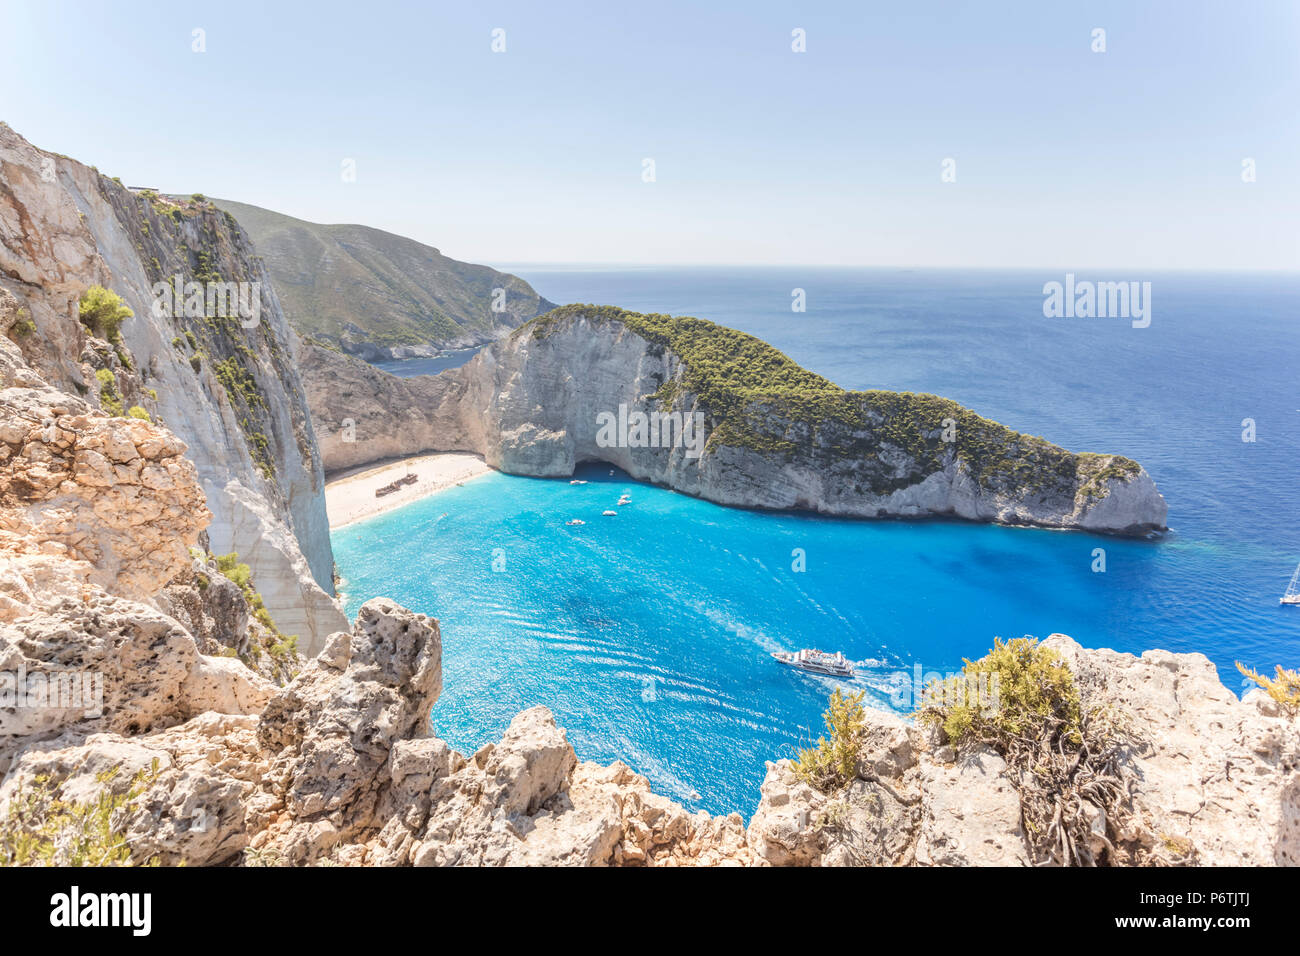 Elevated view of famous shipwreck beach. Zakynthos, Greek Islands, Greece - Stock Image